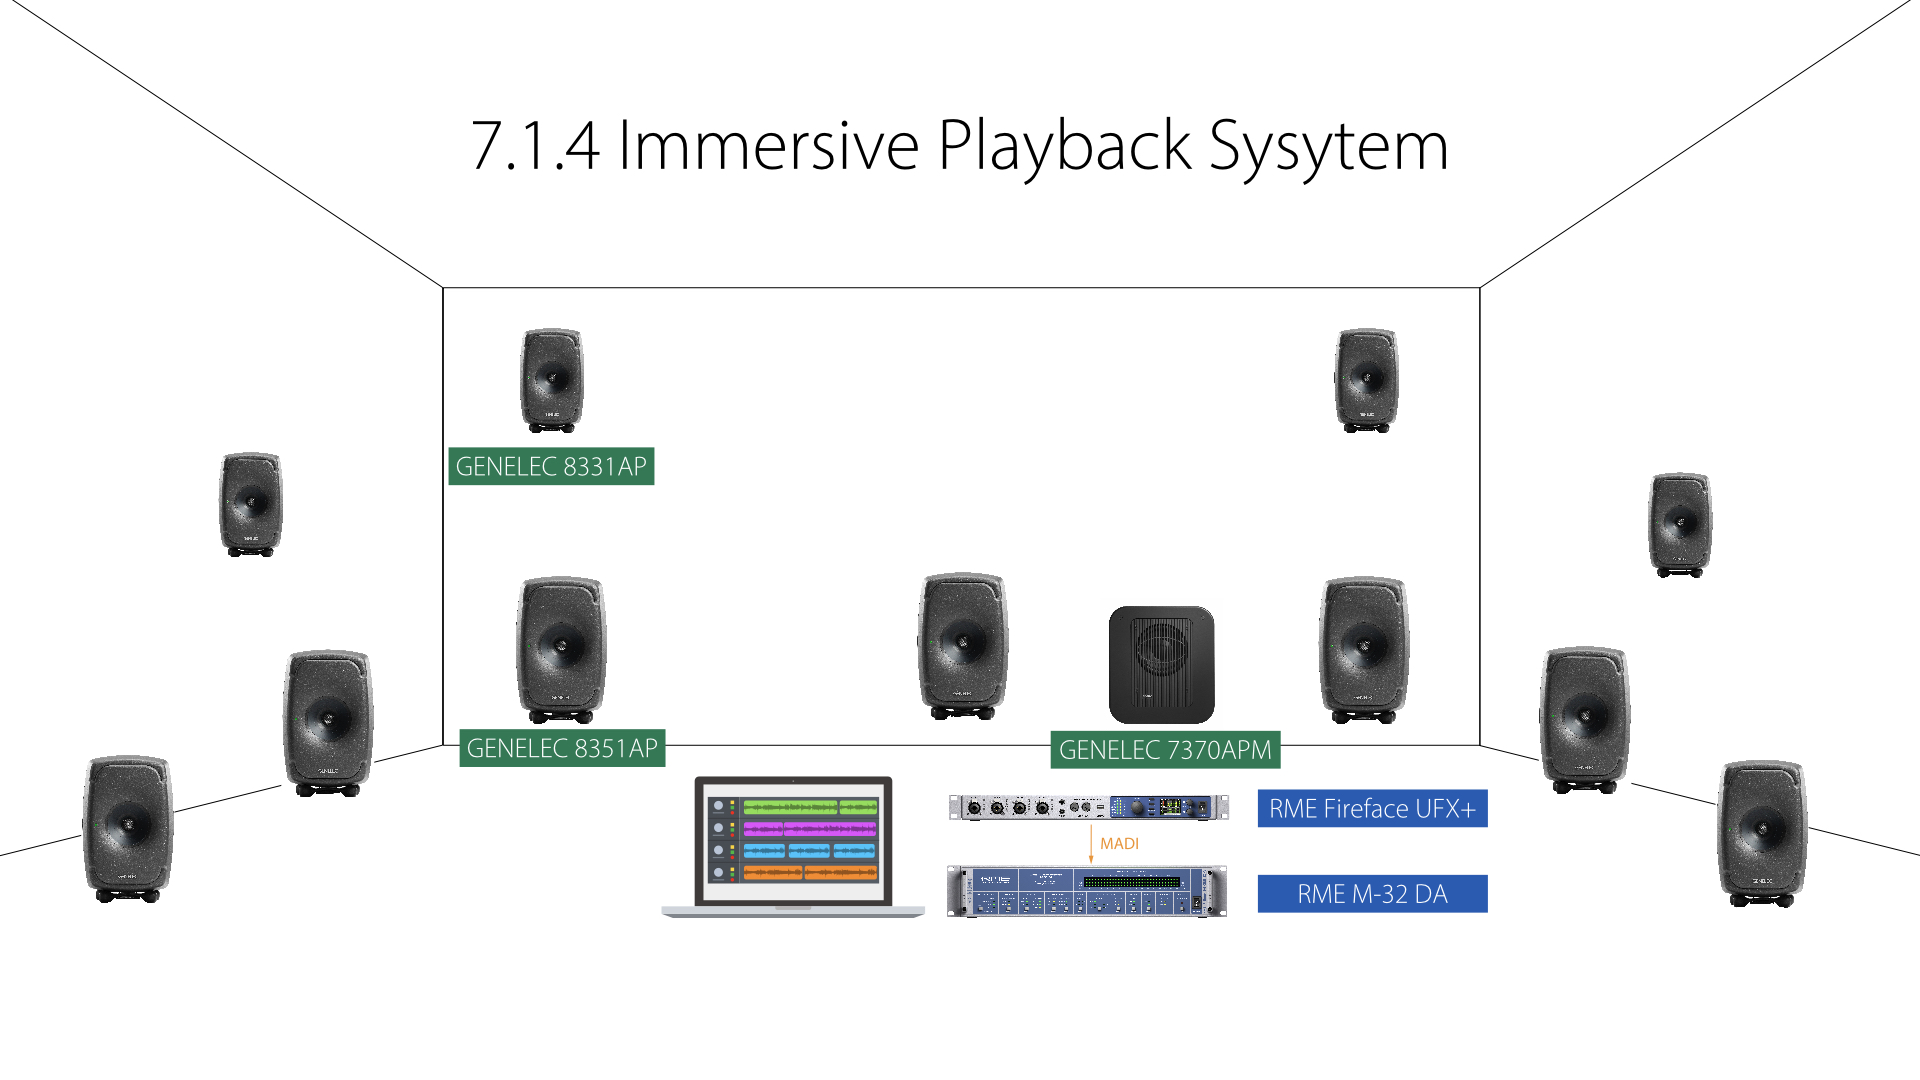 MIW2 Playback System